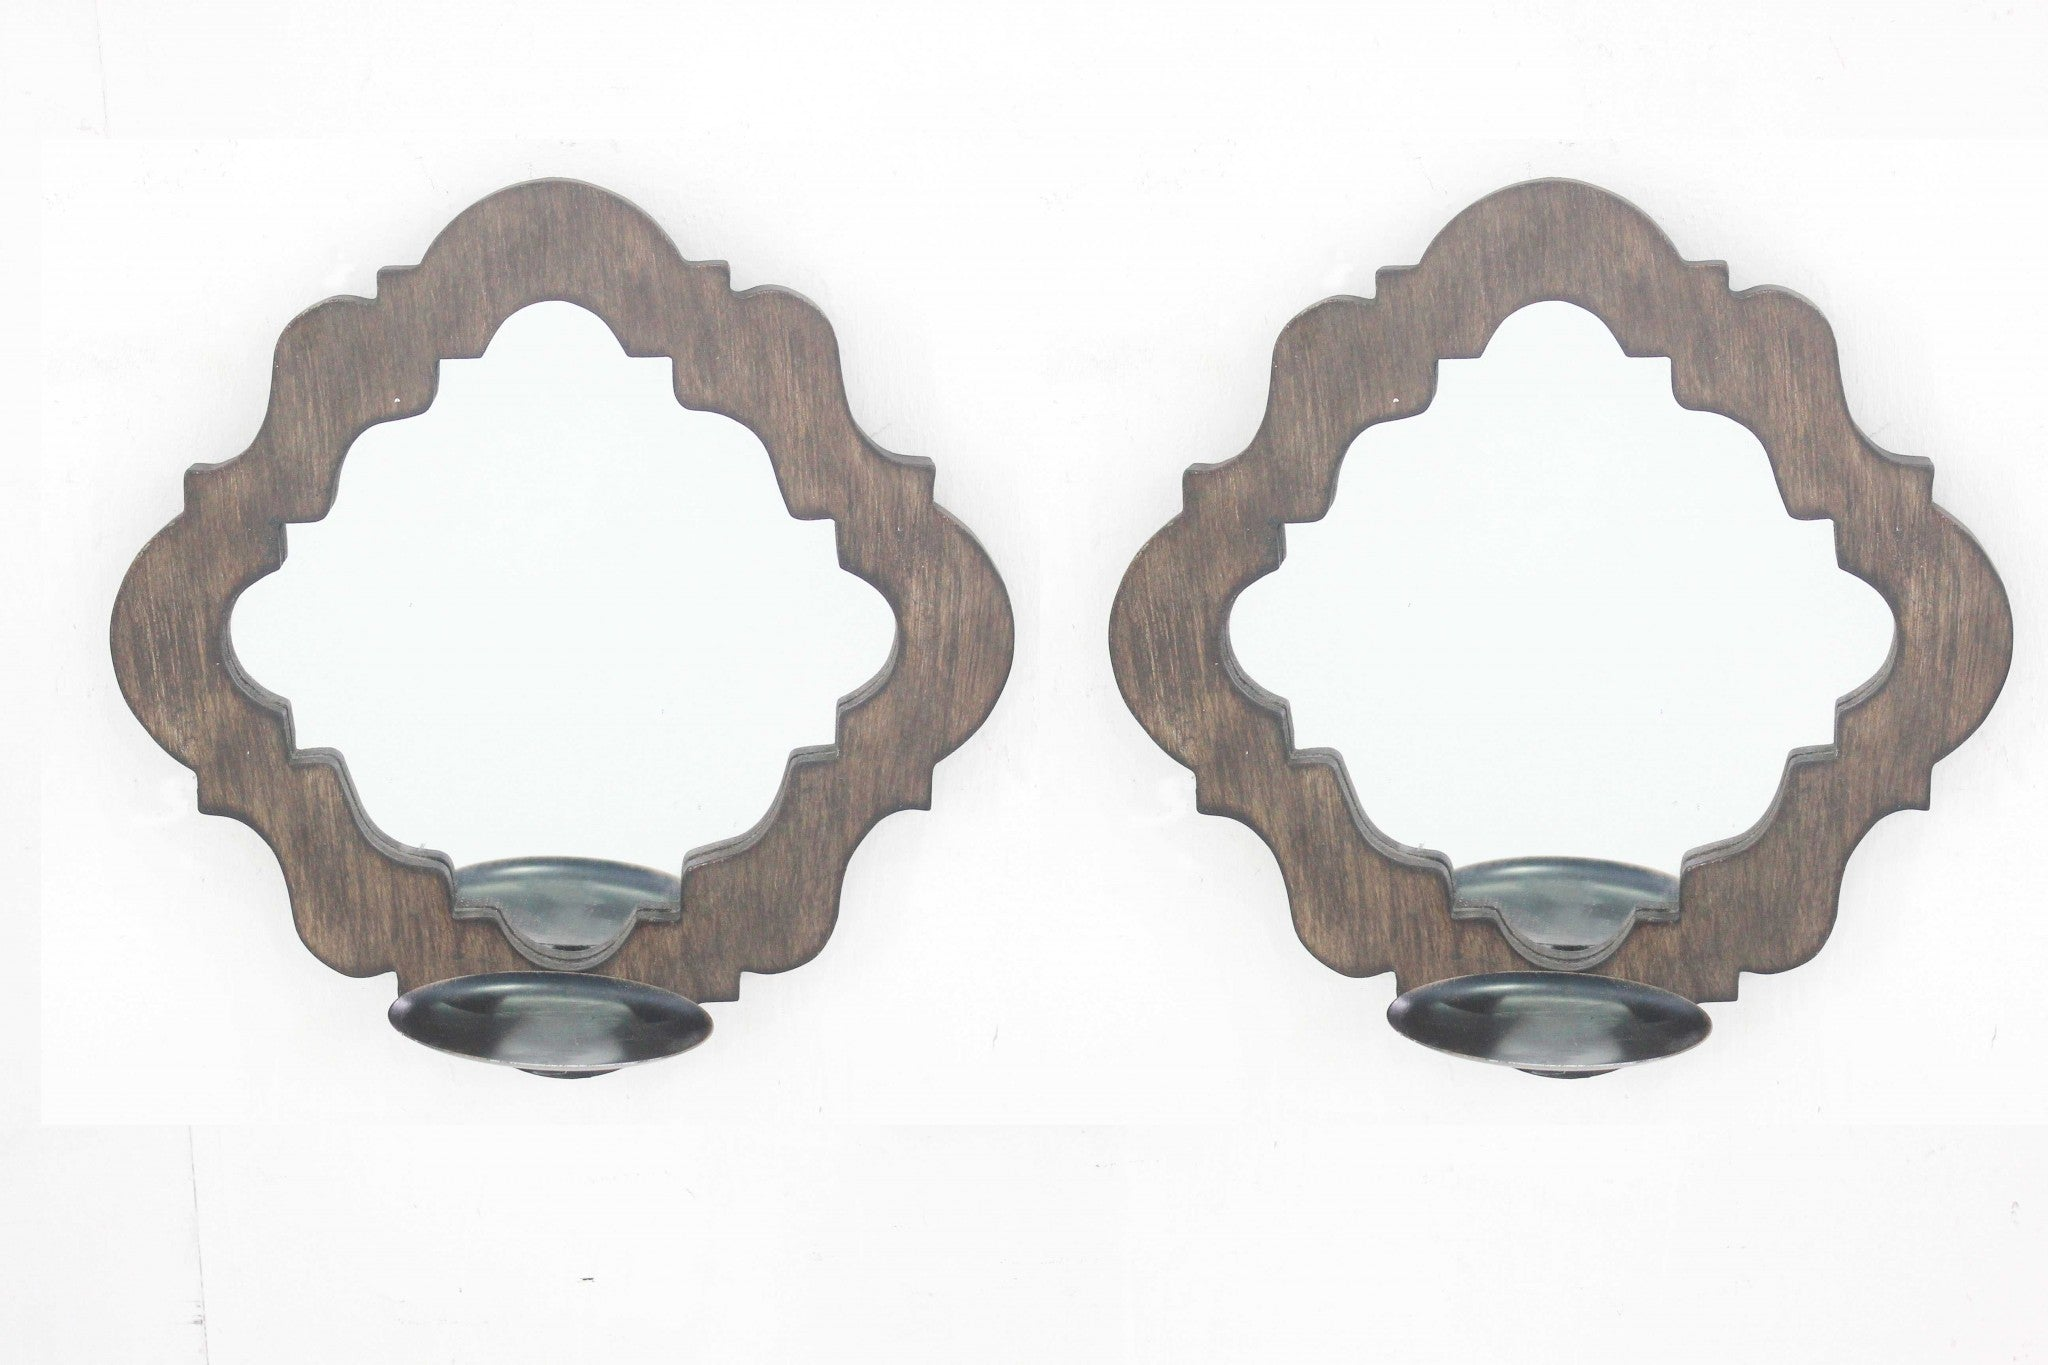 "12.25"" x 12.25"" x 5.5"" Brown, Rustic, Mirrored - Candle Holder Sconce Set"